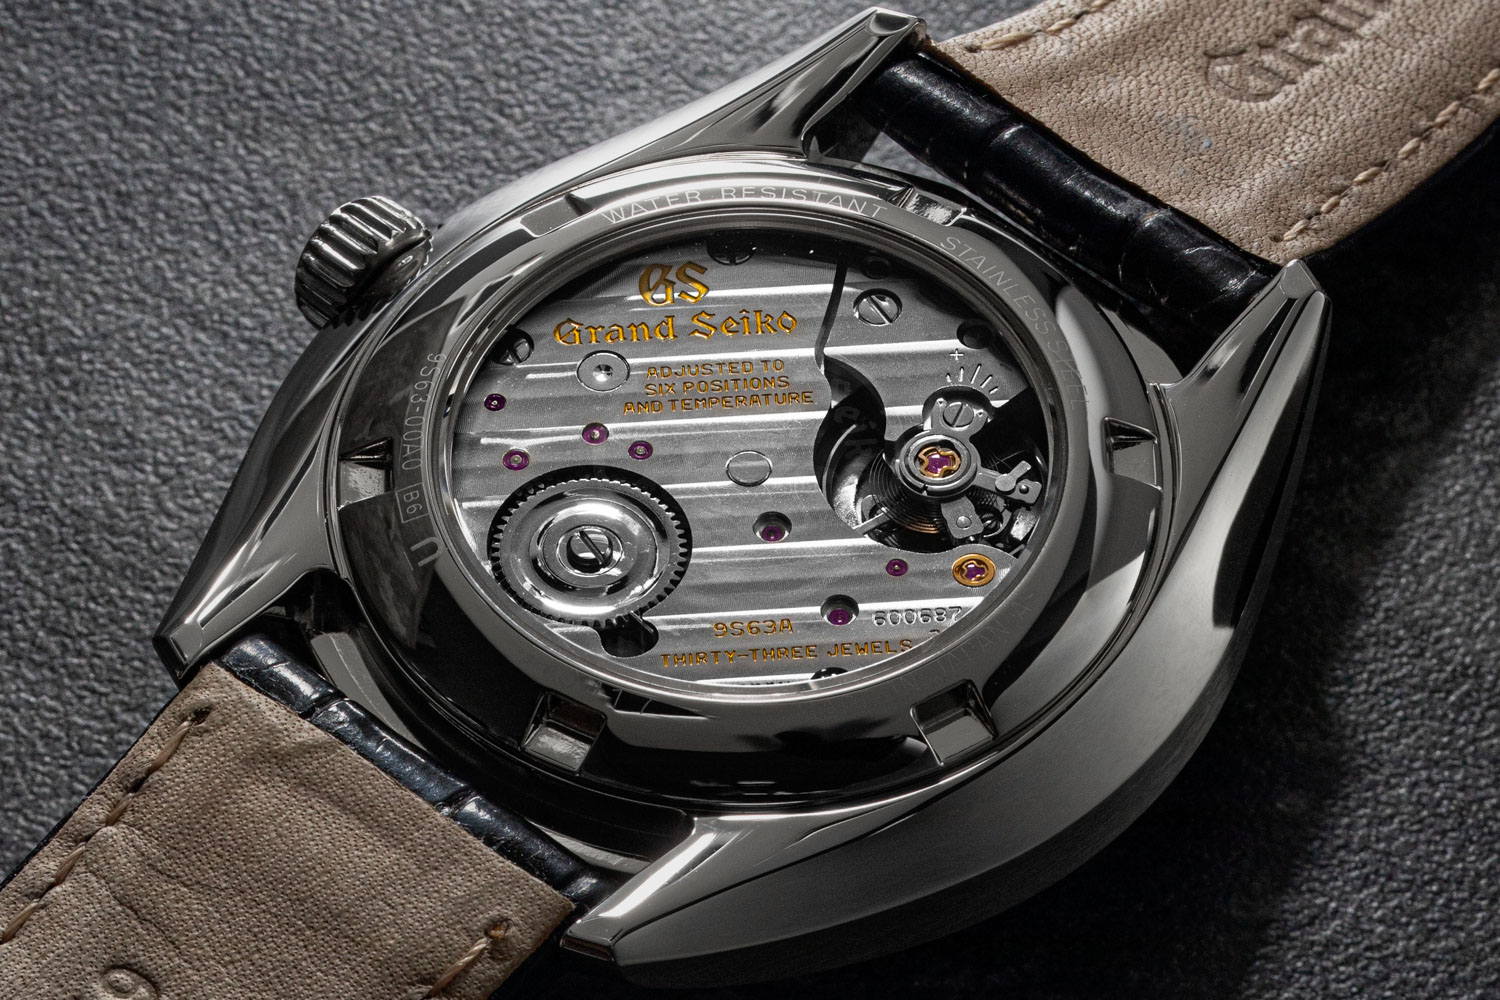 The Grand Seiko SBGK007G is powered by the Calibre 9S63, which reaches back to the famous 9S manual wind movement, which in 1998 became the base of all Grand Seiko mechanical movements (©Revolution)